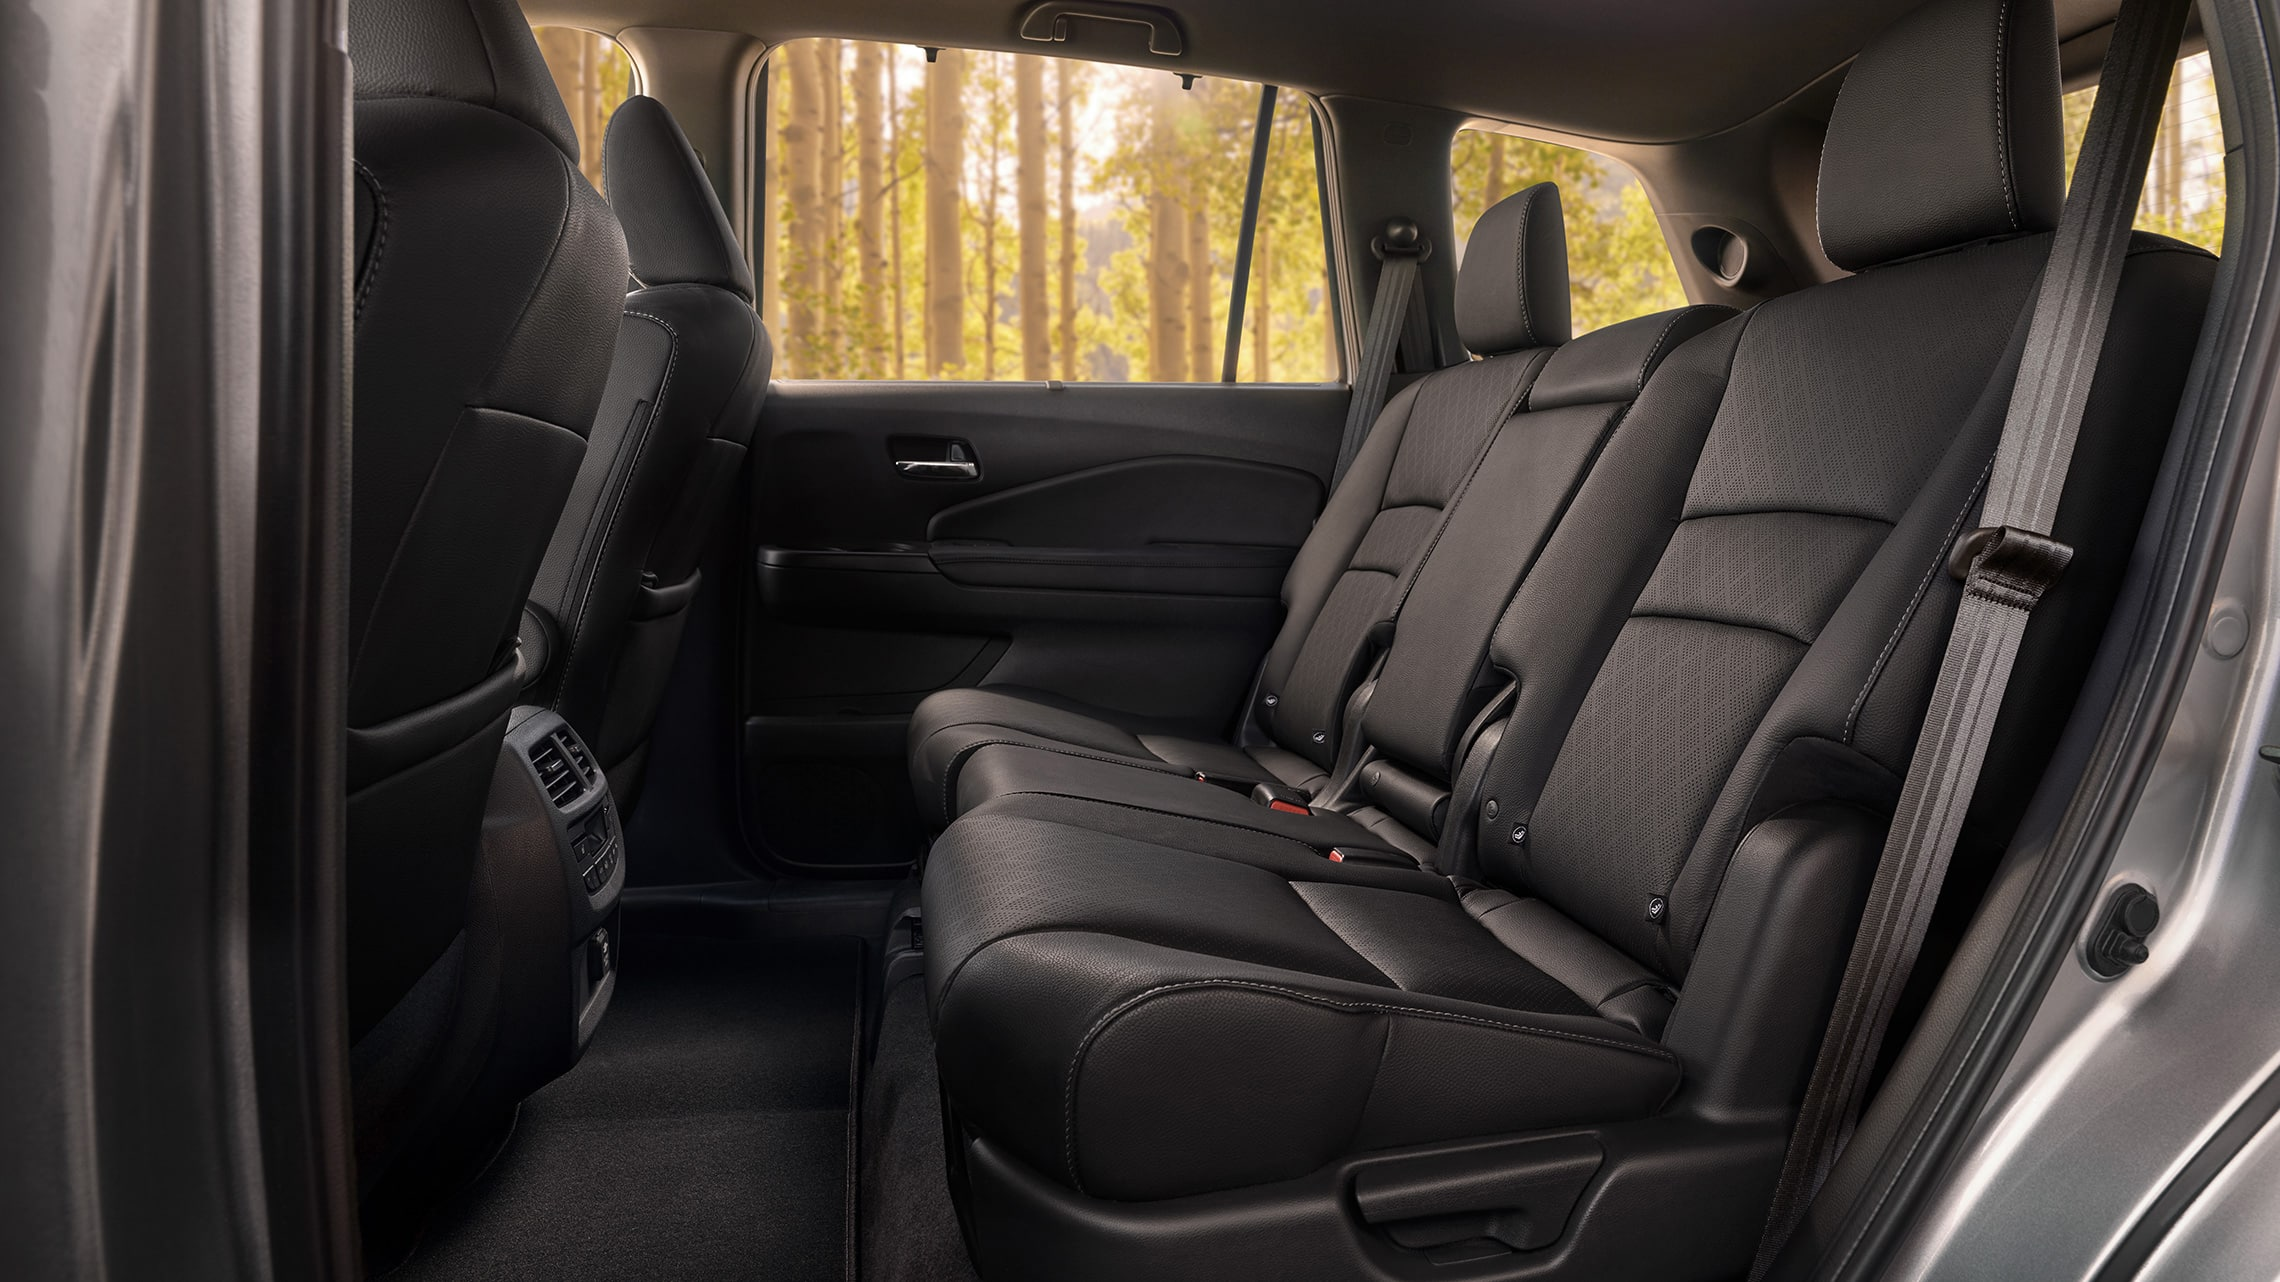 2020 Honda Passport Elite rear interior in Black Leather, displaying spacious 2nd-row seating.